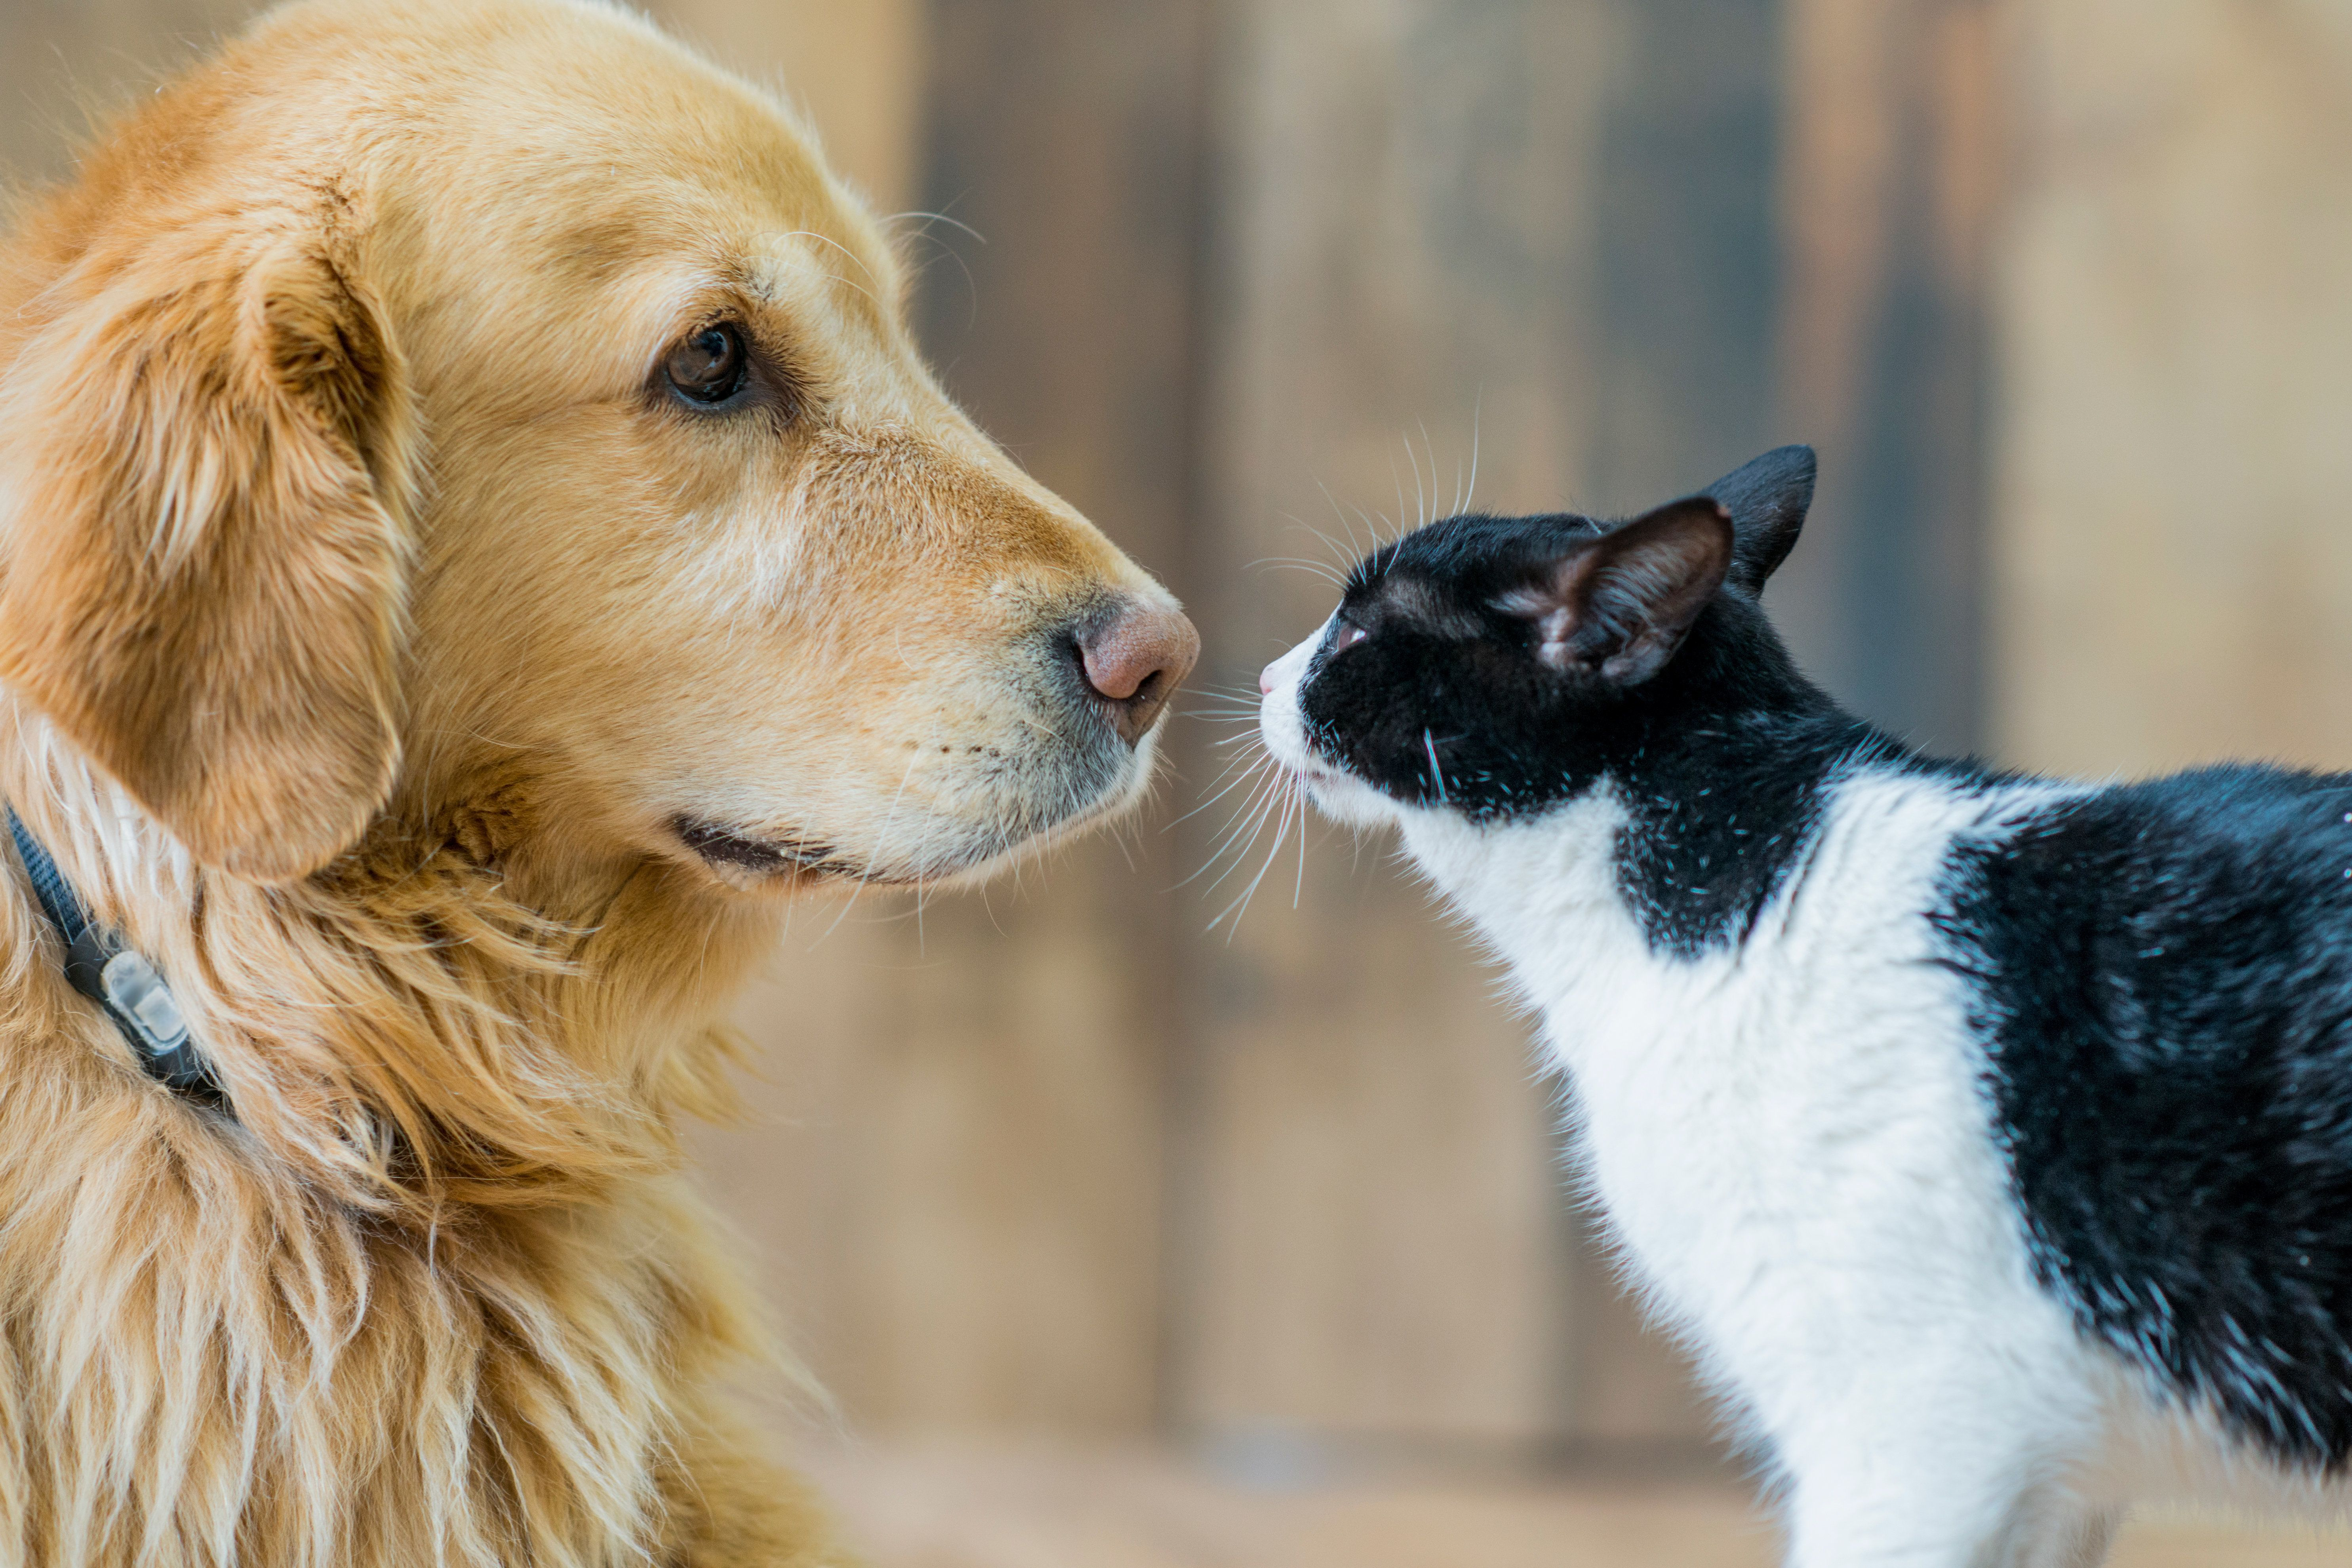 Did A Viral Study 'Prove' Dogs Are Smarter Than Cats? Not